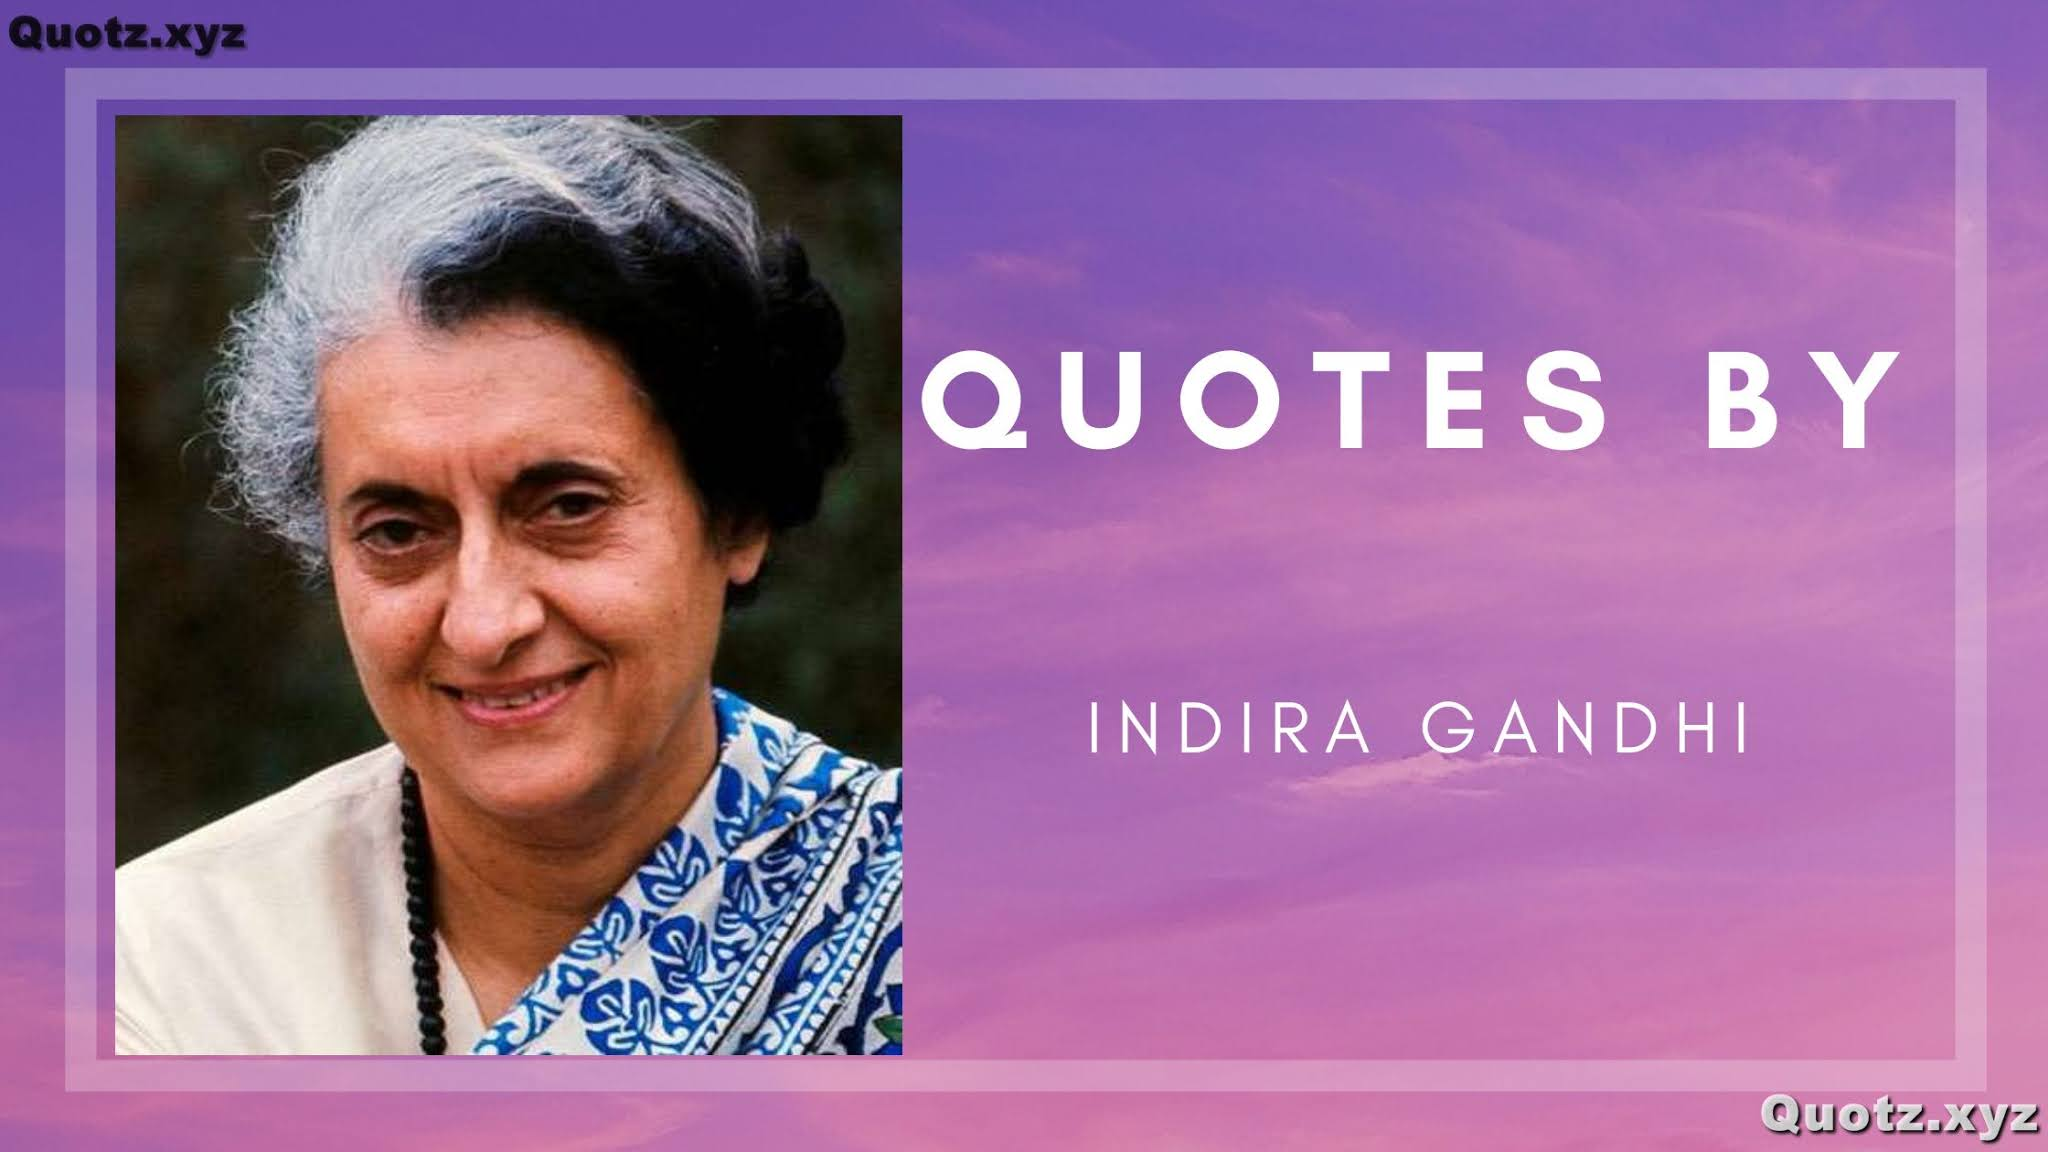 20+ Best Quotes of Indira Gandhi on Inspirational, Motivational with Quotes Images